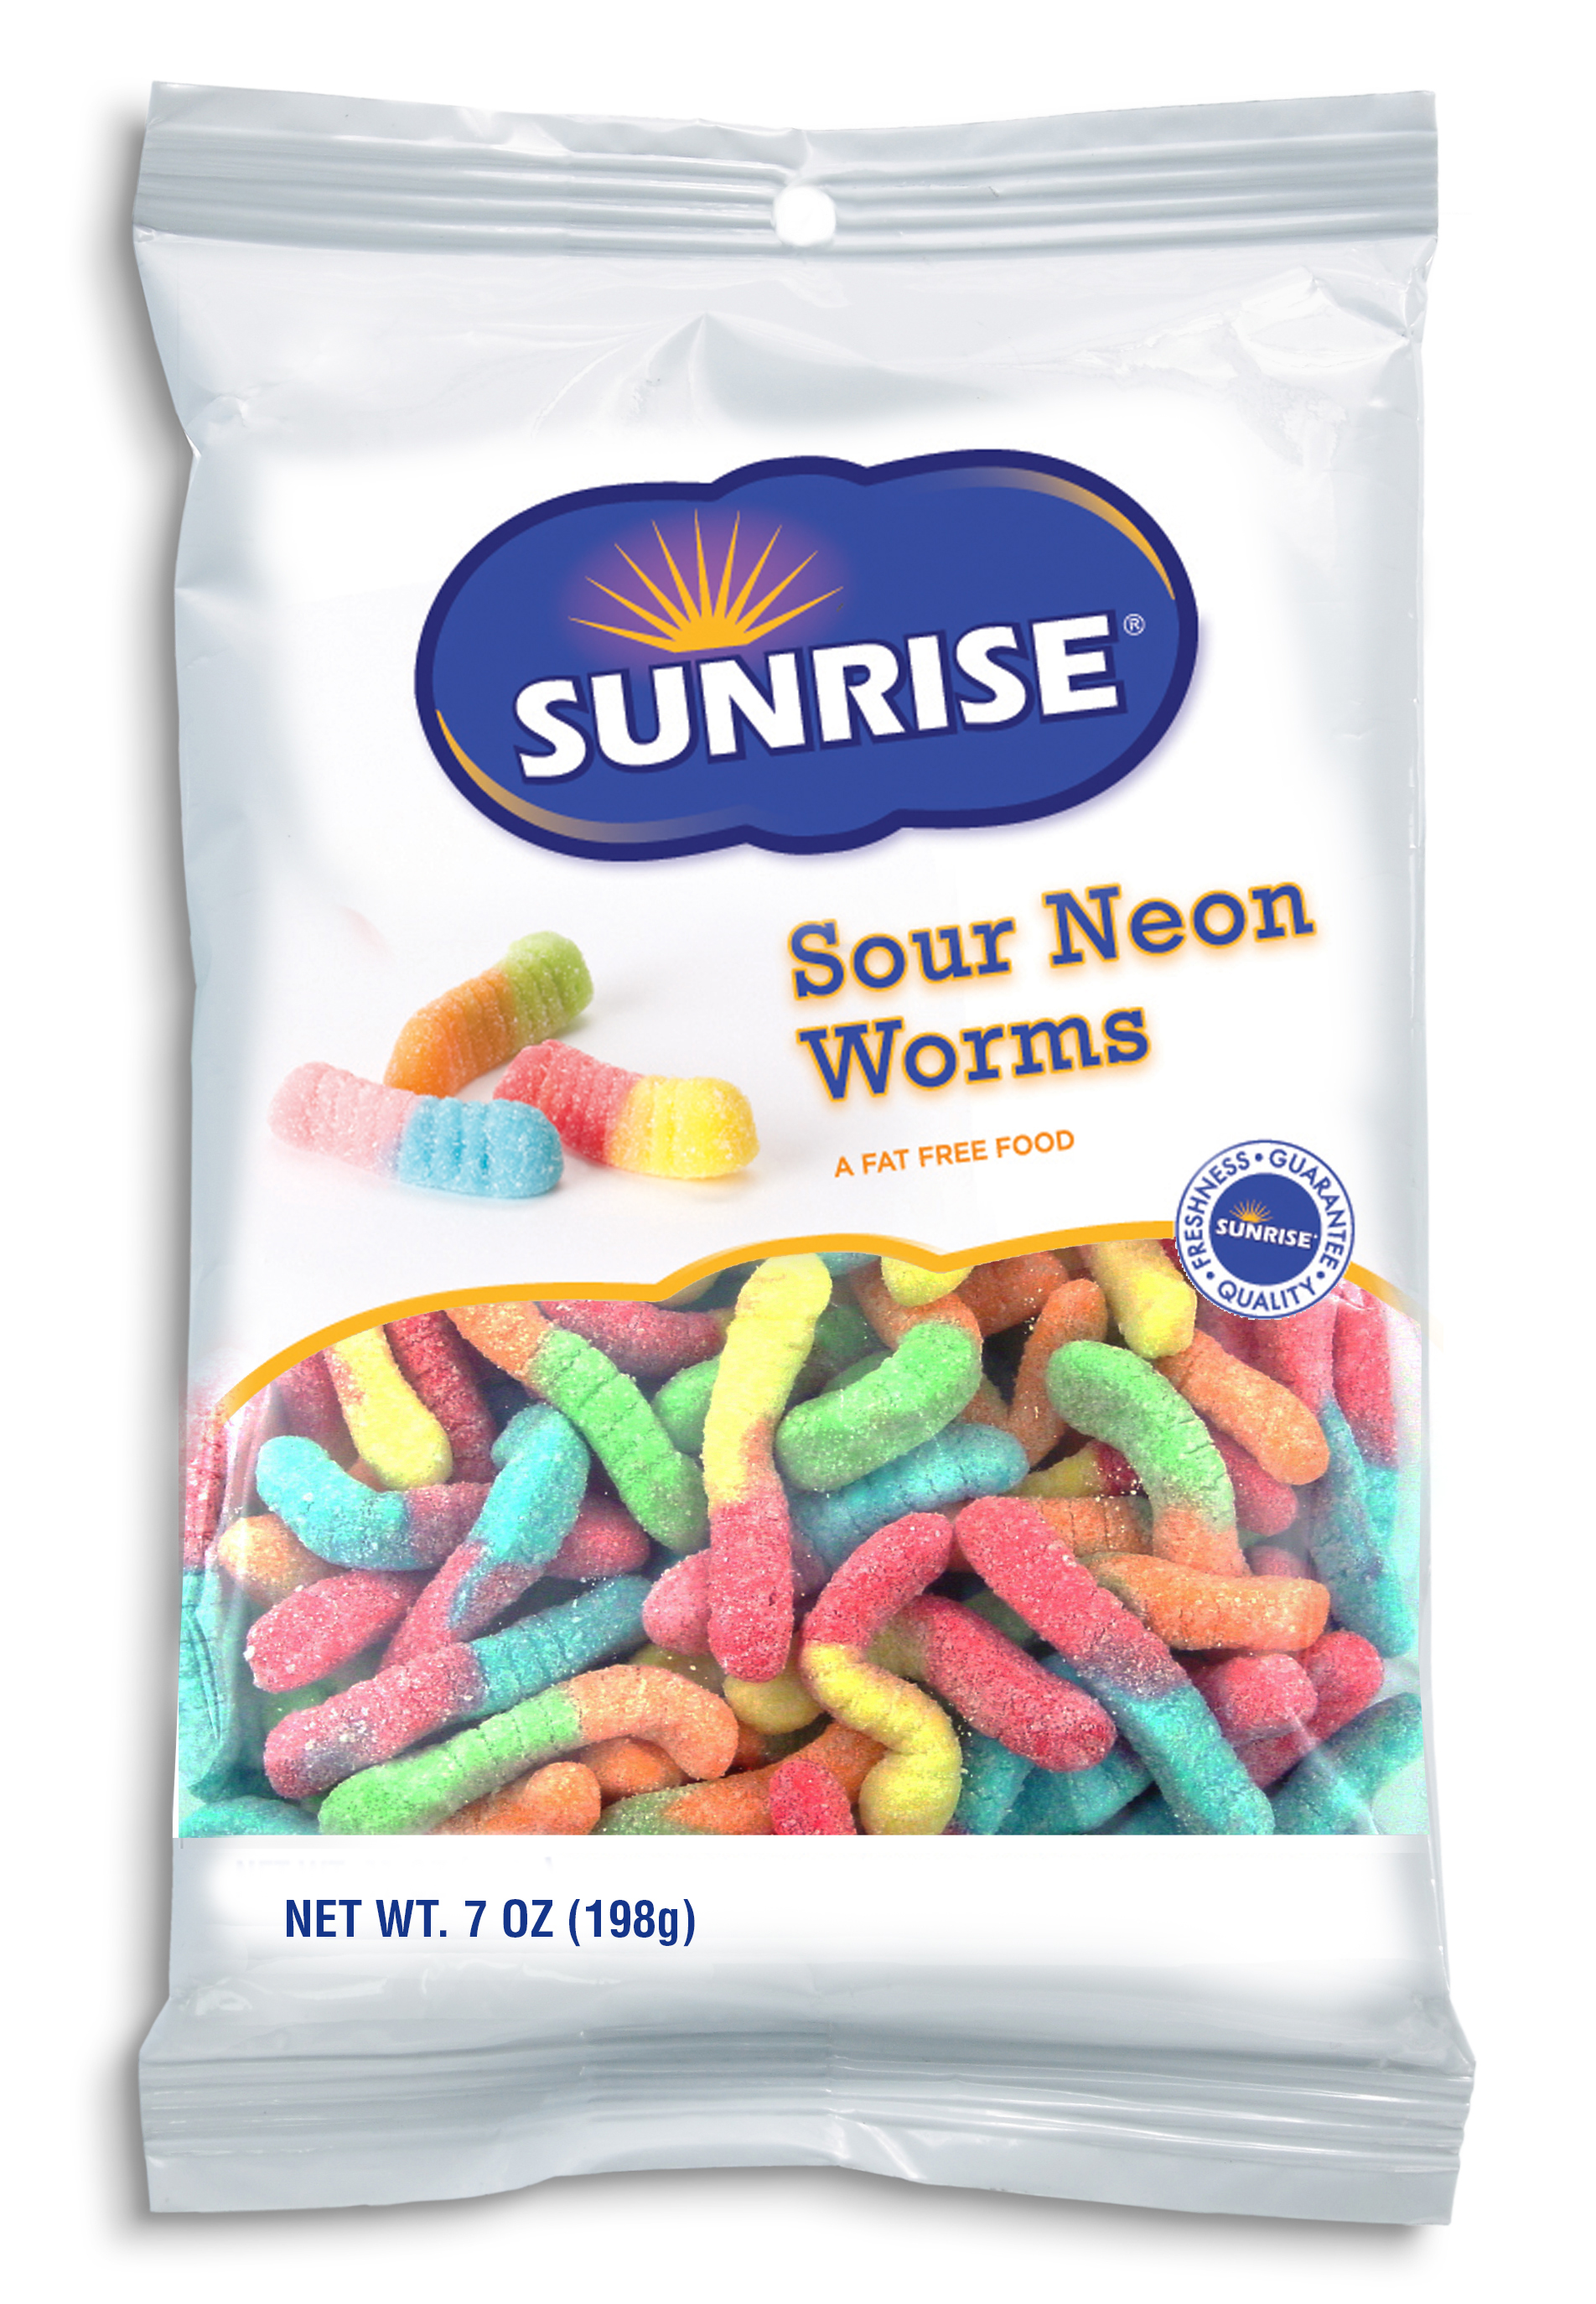 Bag of Sour Neon Gummi Worms